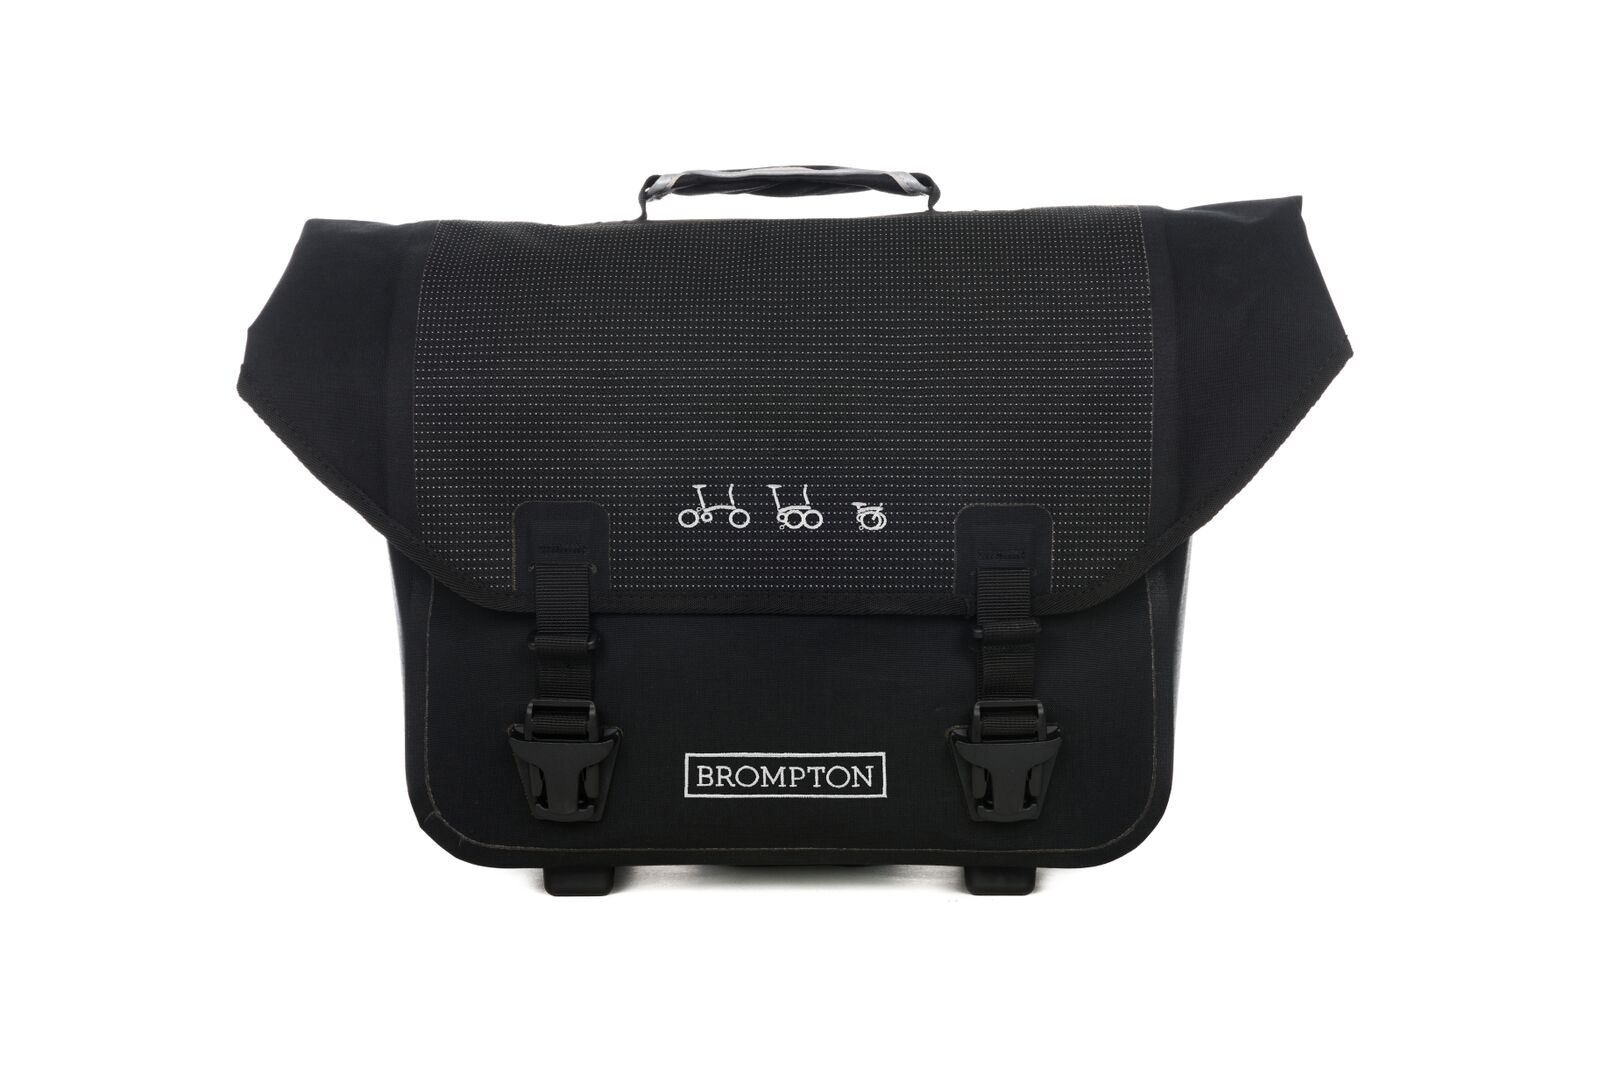 o bag  -Available in reflective material -Water-resistant -Integral padded laptop sleeve -Two removable rear pockets for smalle ritems -Key clip and convenient stationary holders -Shoulder strap  -20 Litres